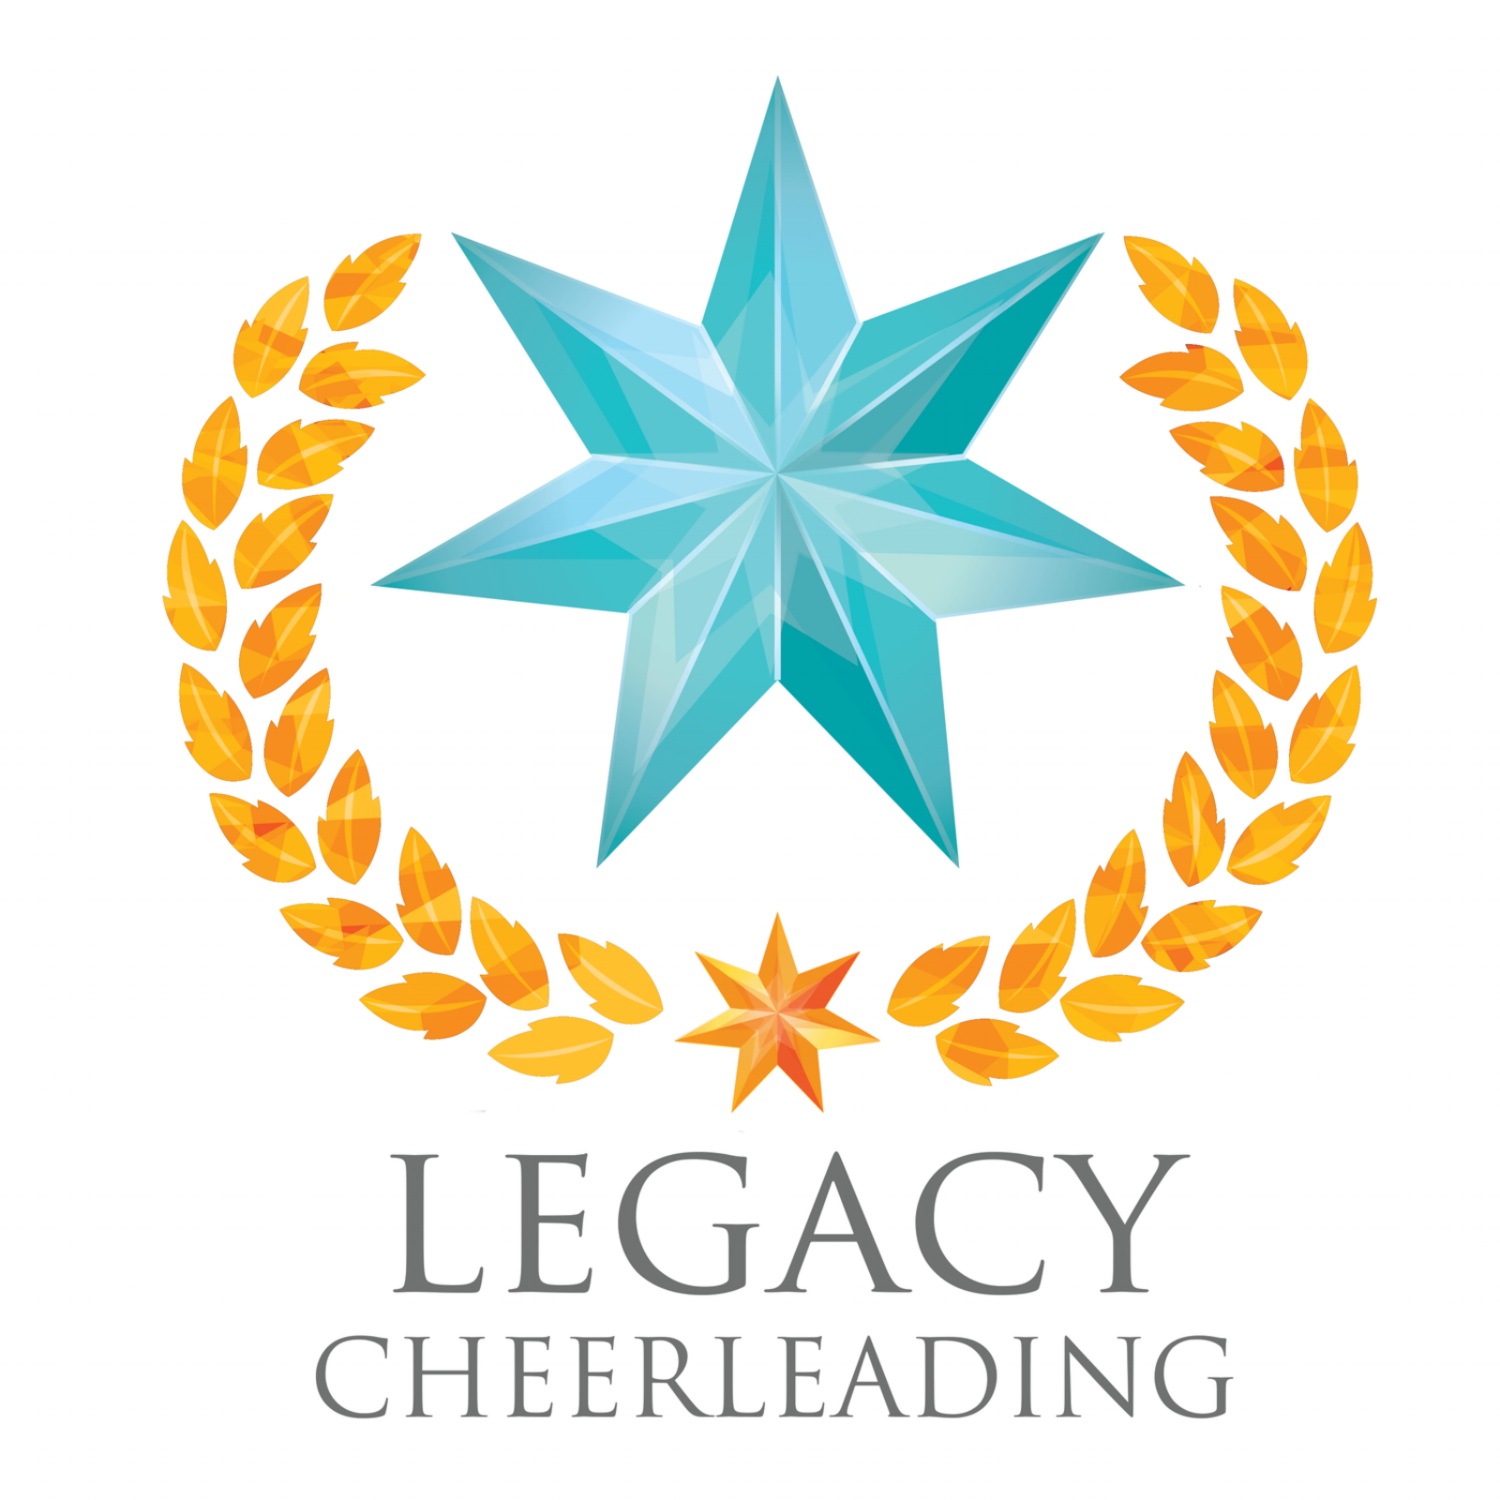 Legacy Cheerleading